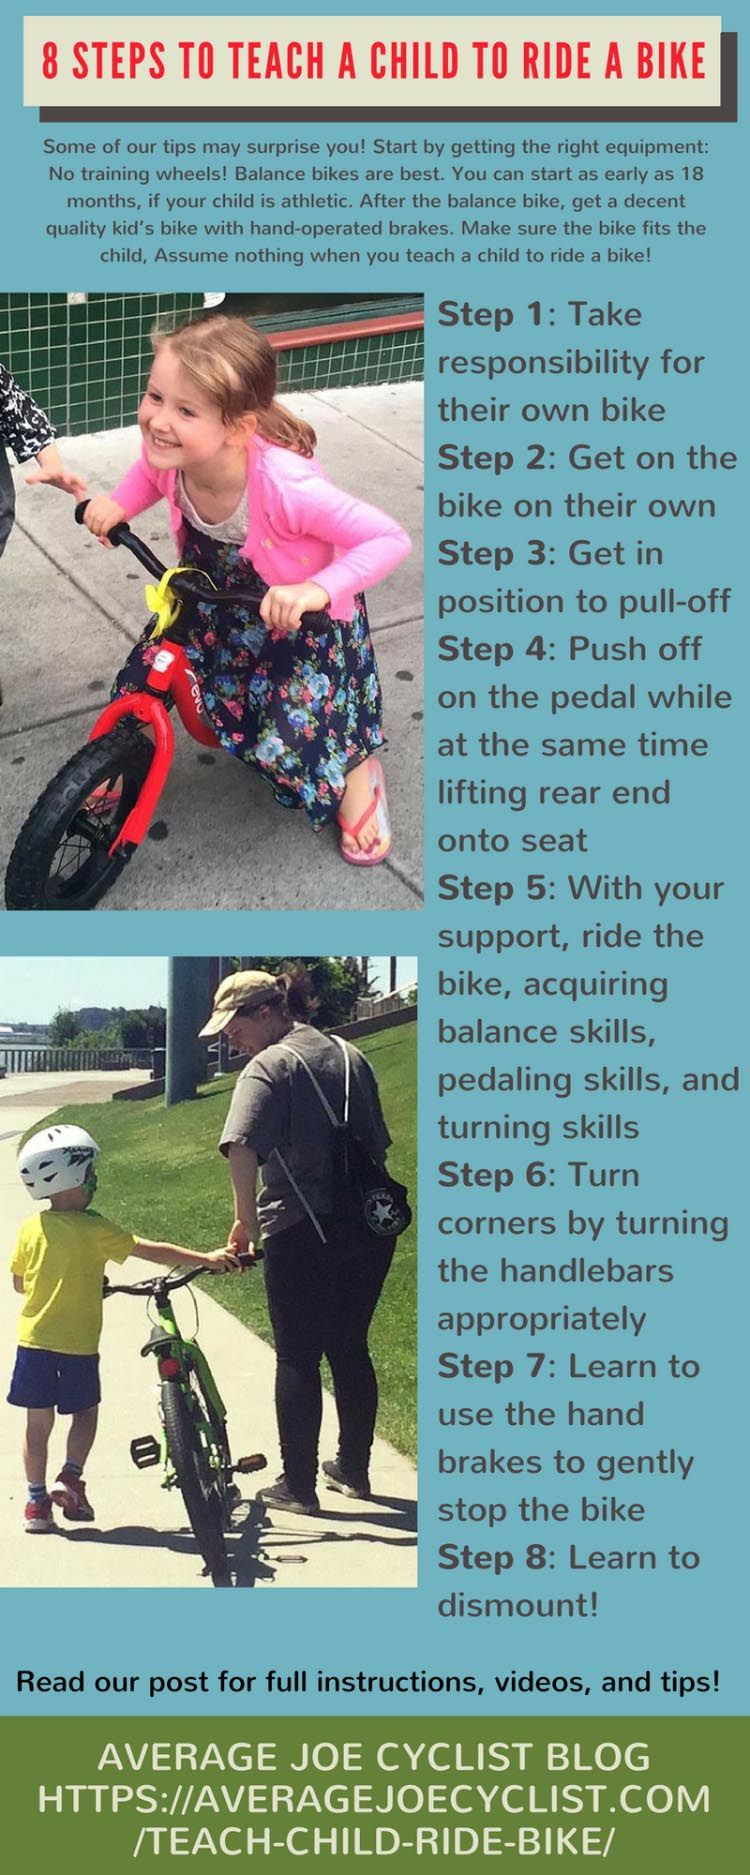 9 Simple Steps To Teach A Child To Ride A Bike Bike Ride